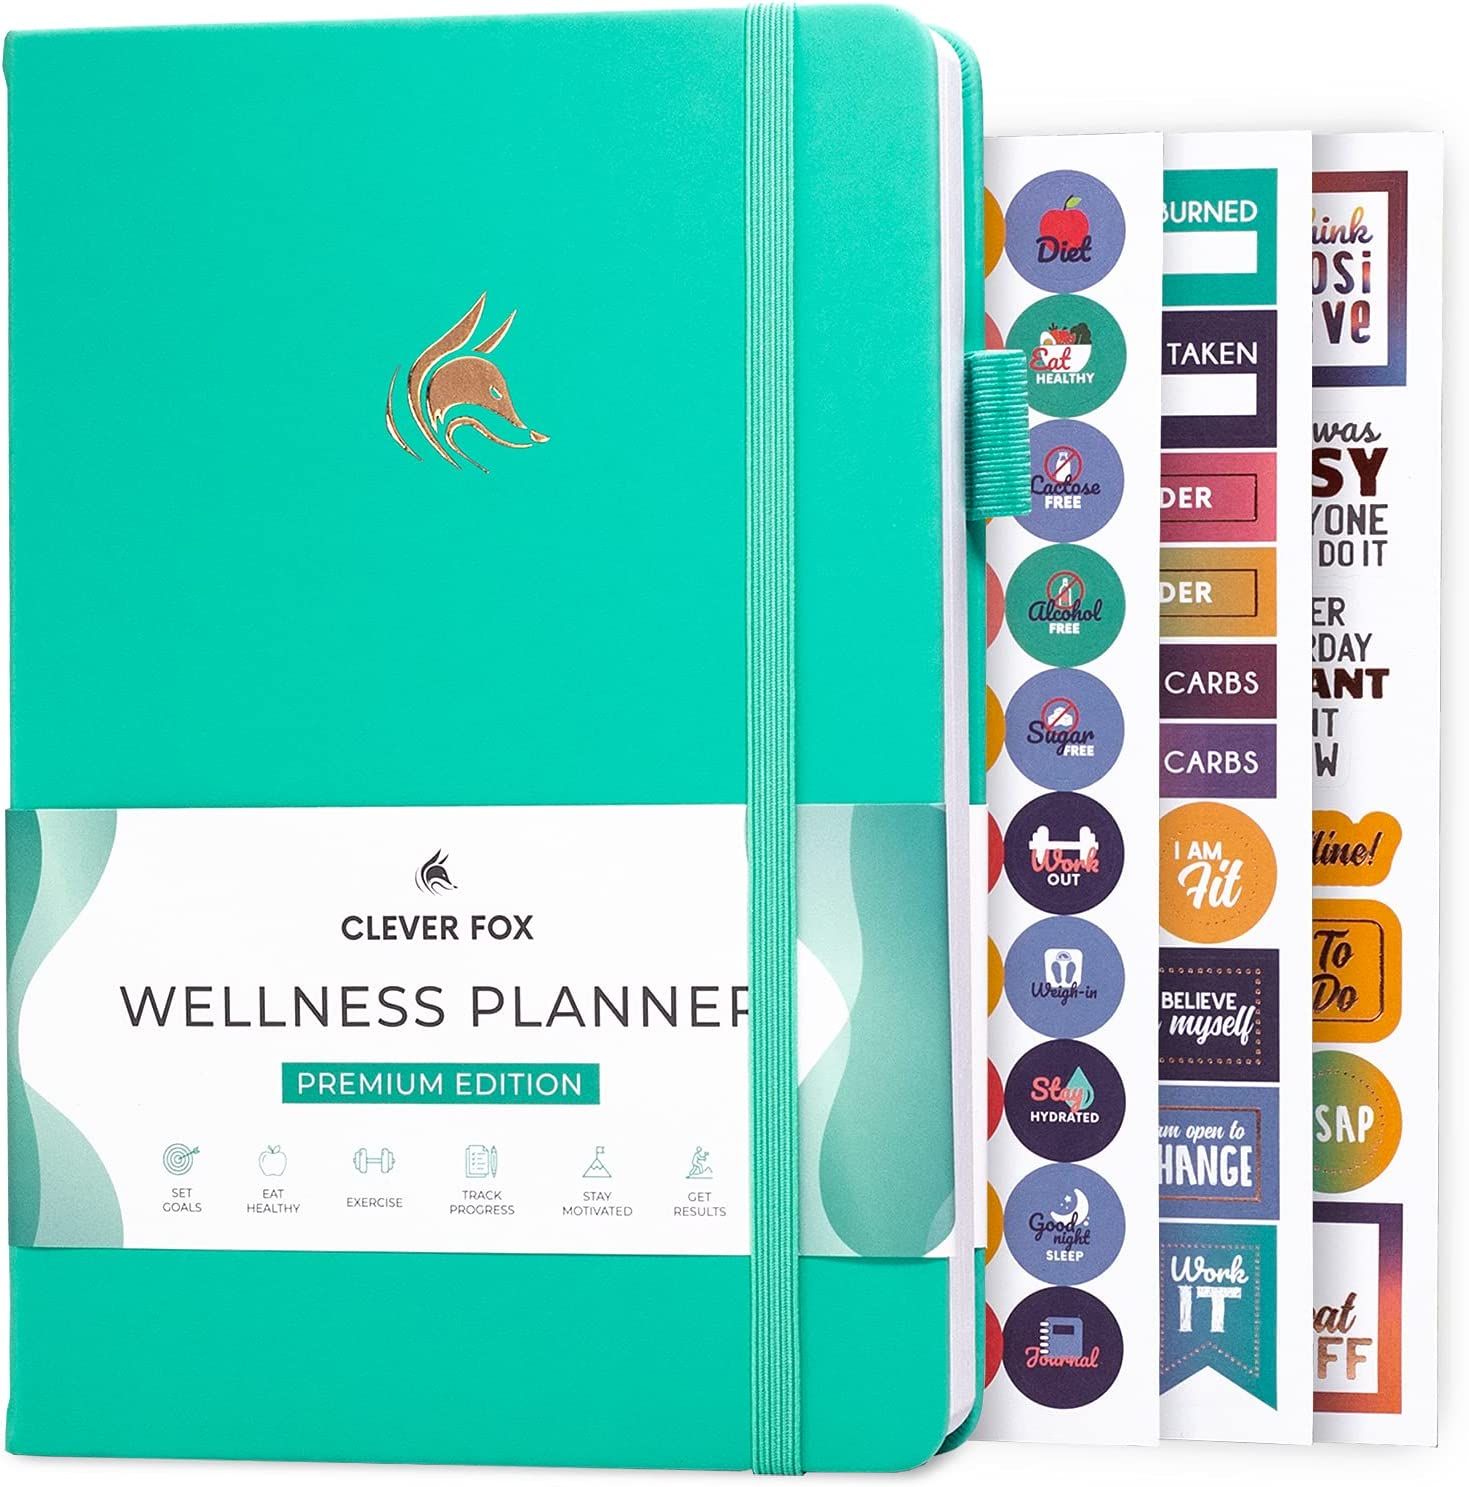 Clever Fox Wellness Journal - Weekly & Daily Health and Wellness Log, Food Journal & Meal Planner Diary for Calorie Counting, Notebook for Medical Condition Tracking, A5-Sized - Turquoise